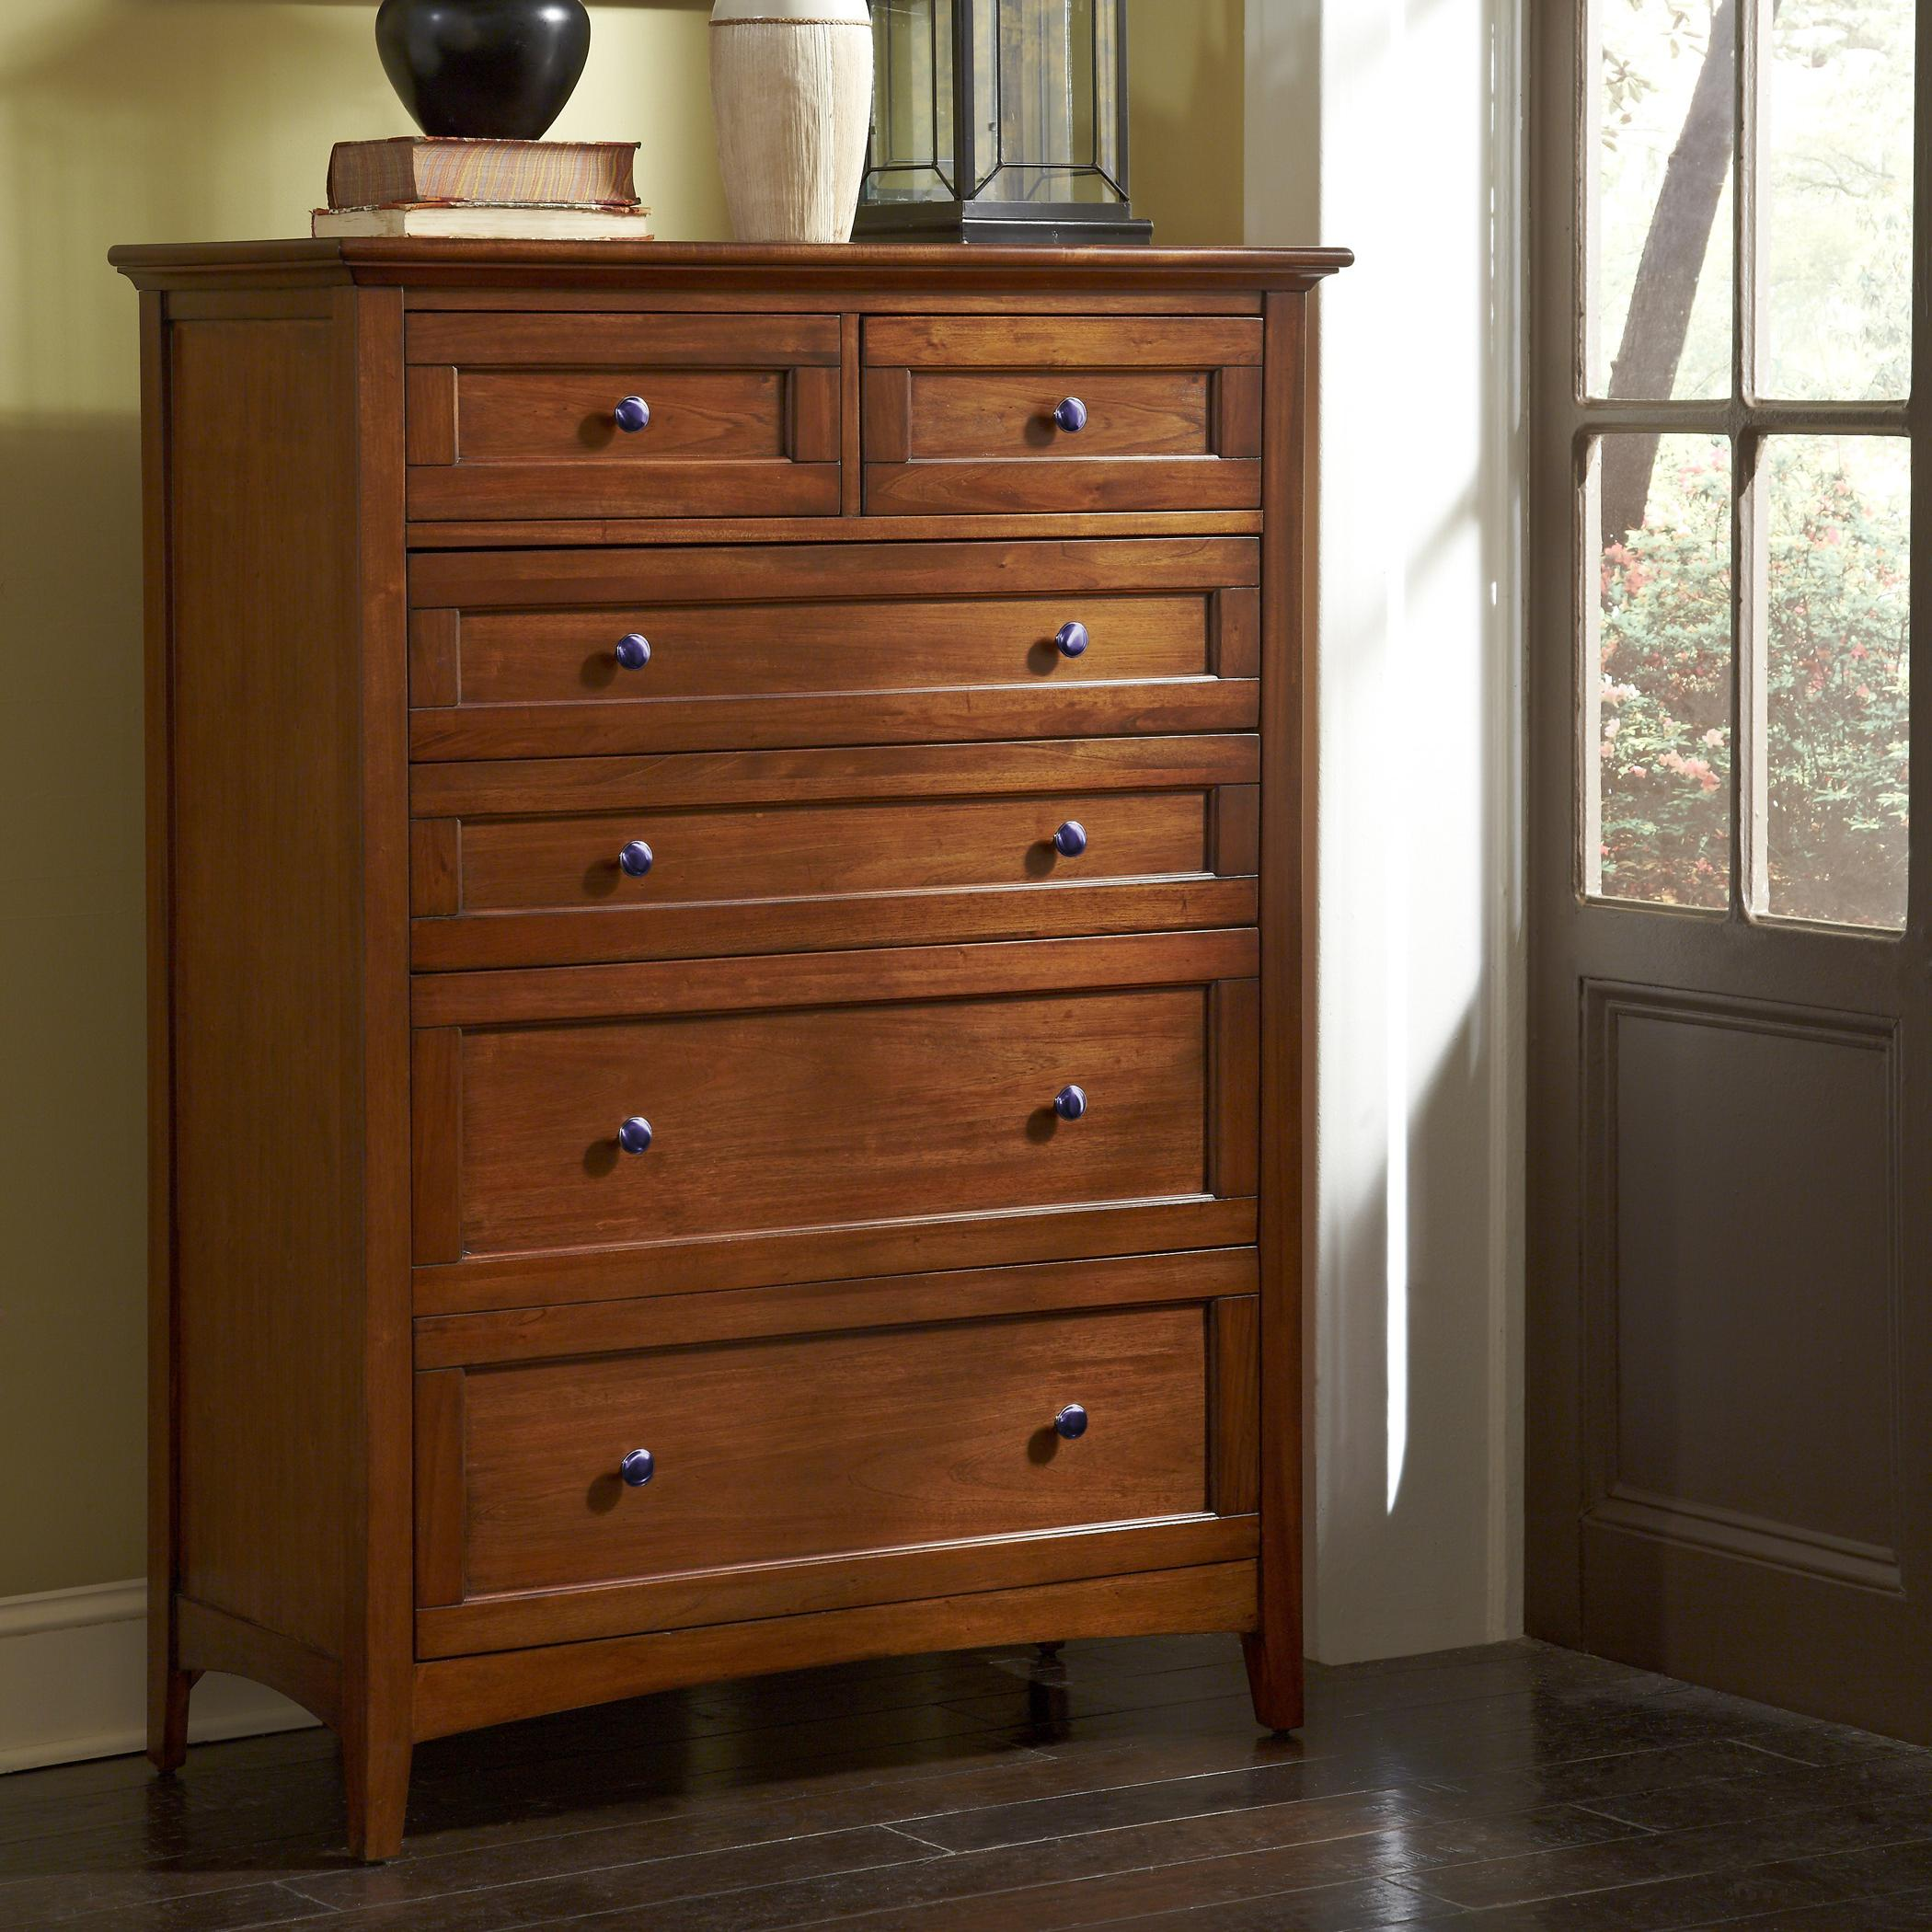 Westlake Chest of Drawers by A-A at Walker's Furniture